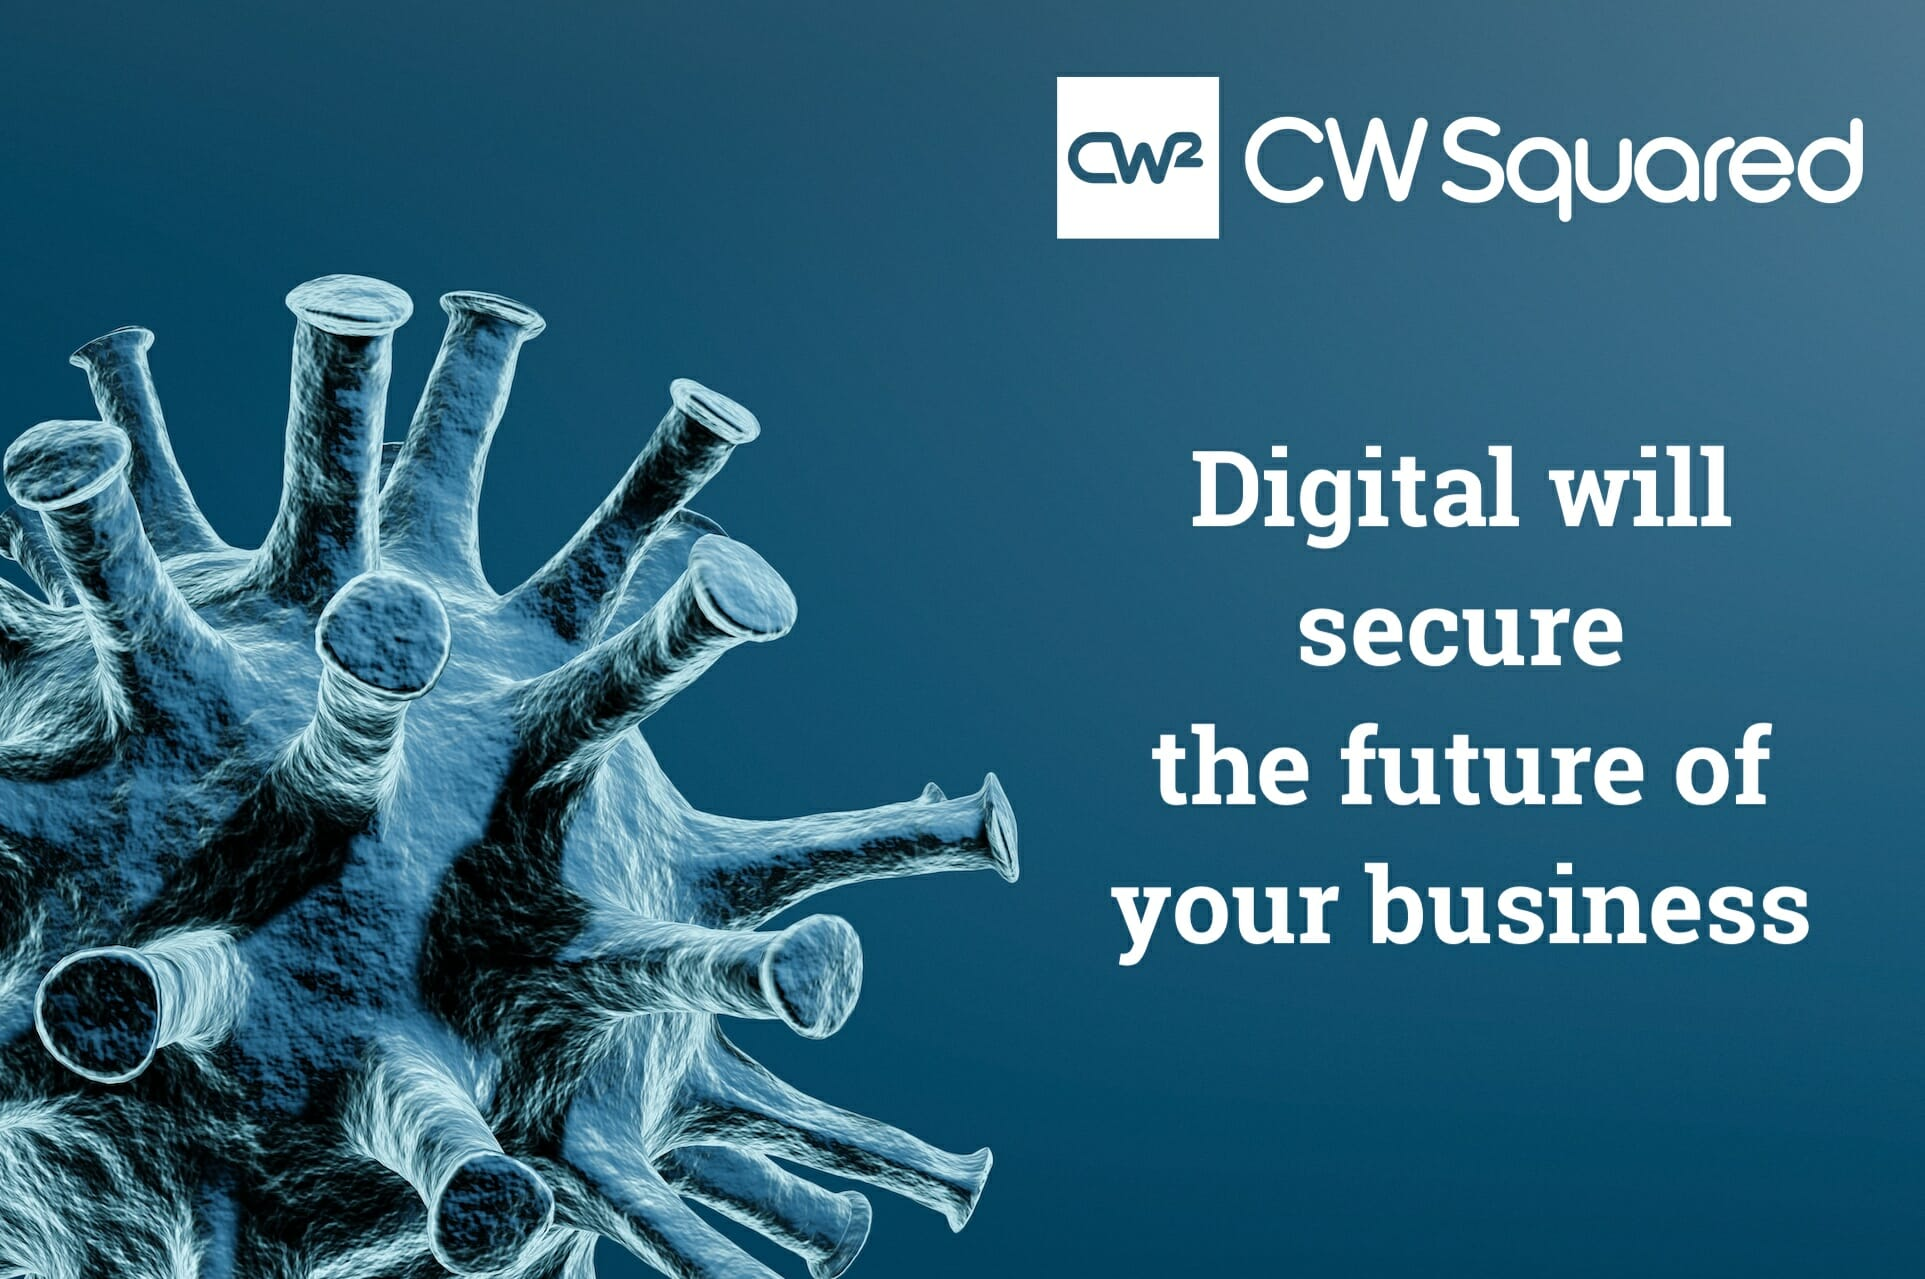 COVID-19: Digital will secure the future of your business